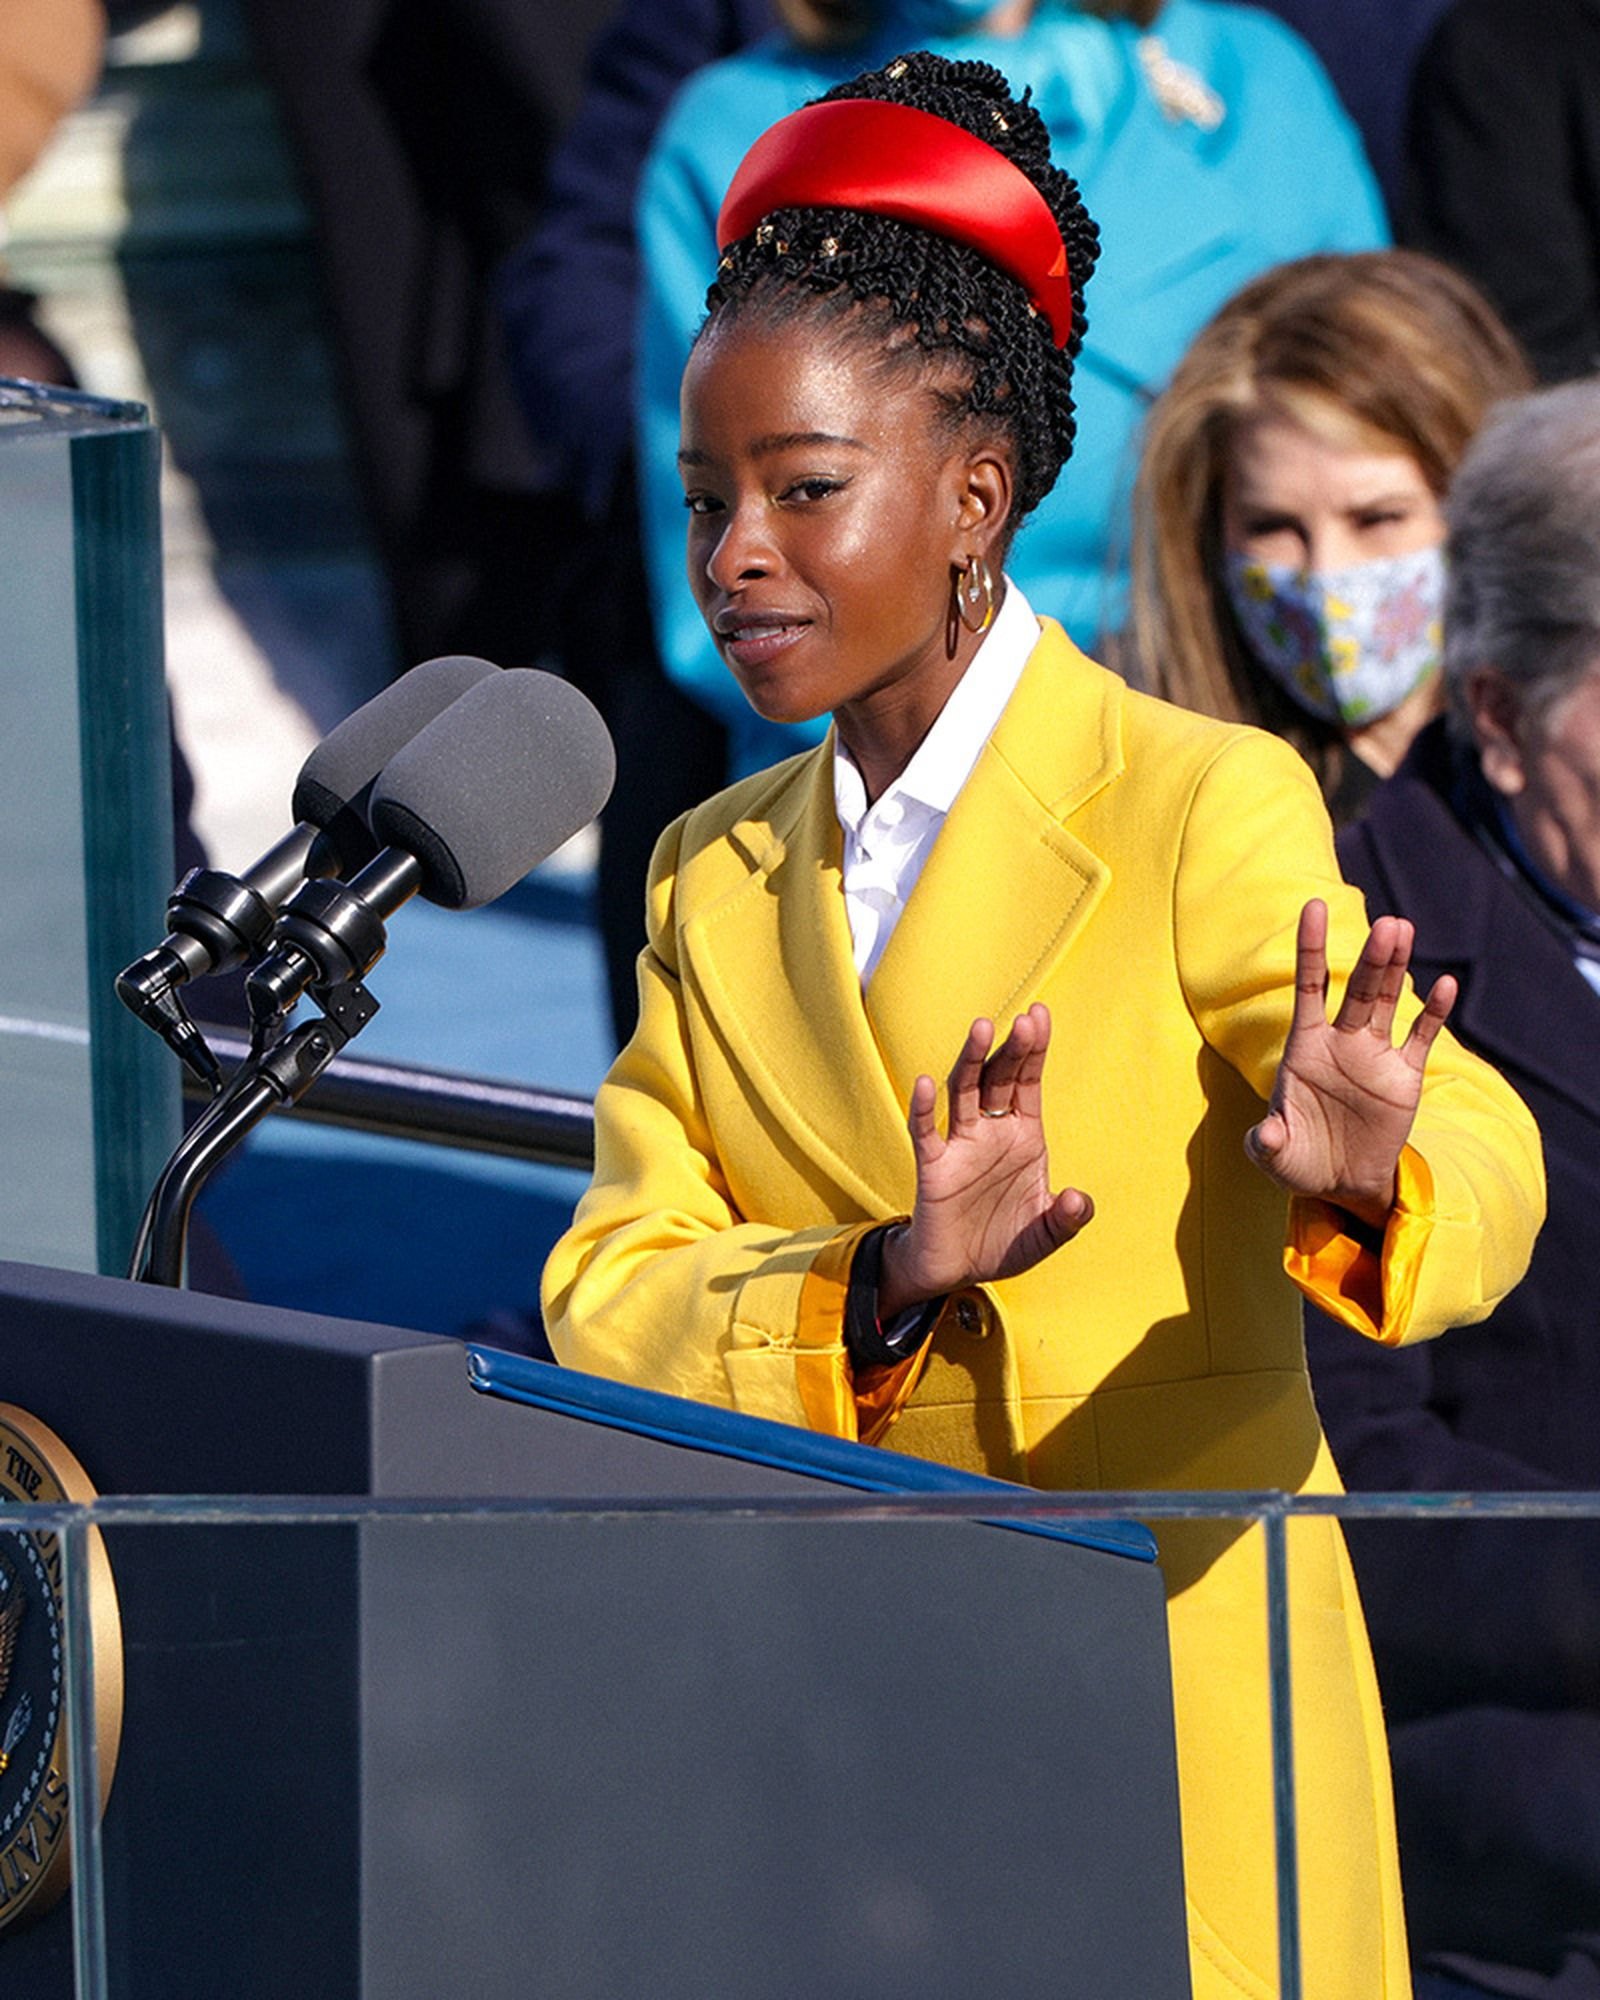 inauguration-day-2021-best-looks-03